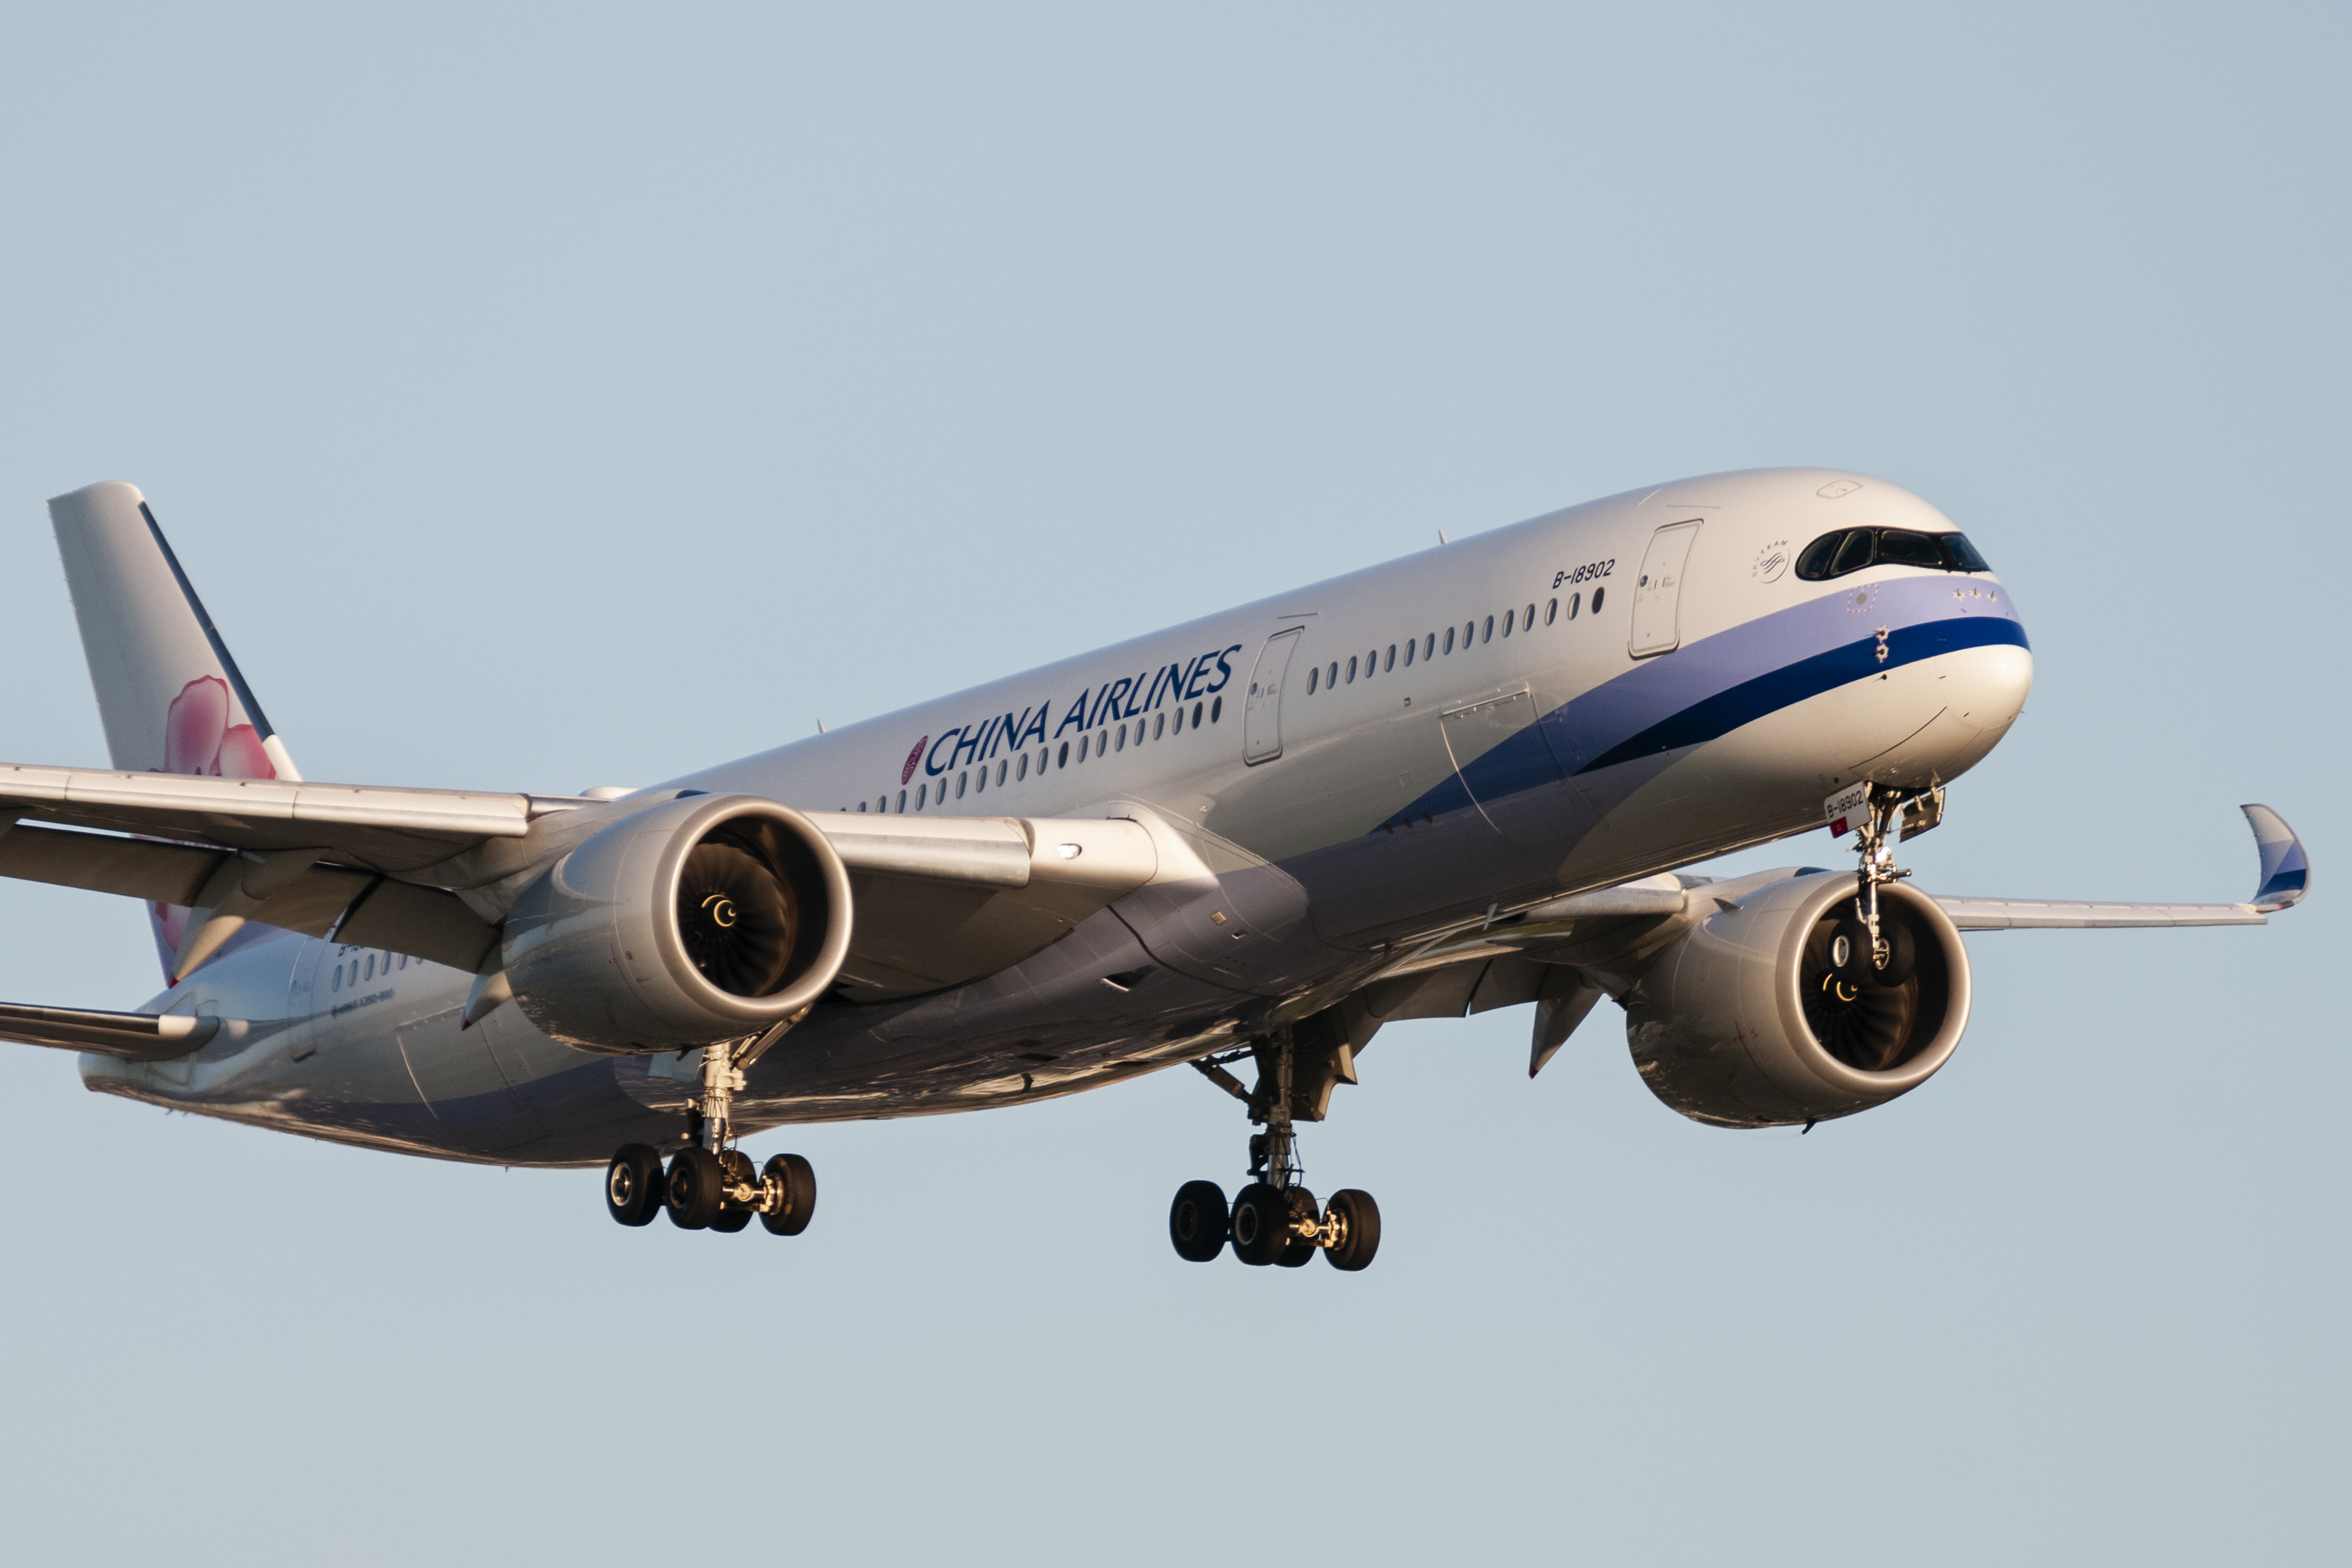 A China Airlines passenger jet. Credit: PA